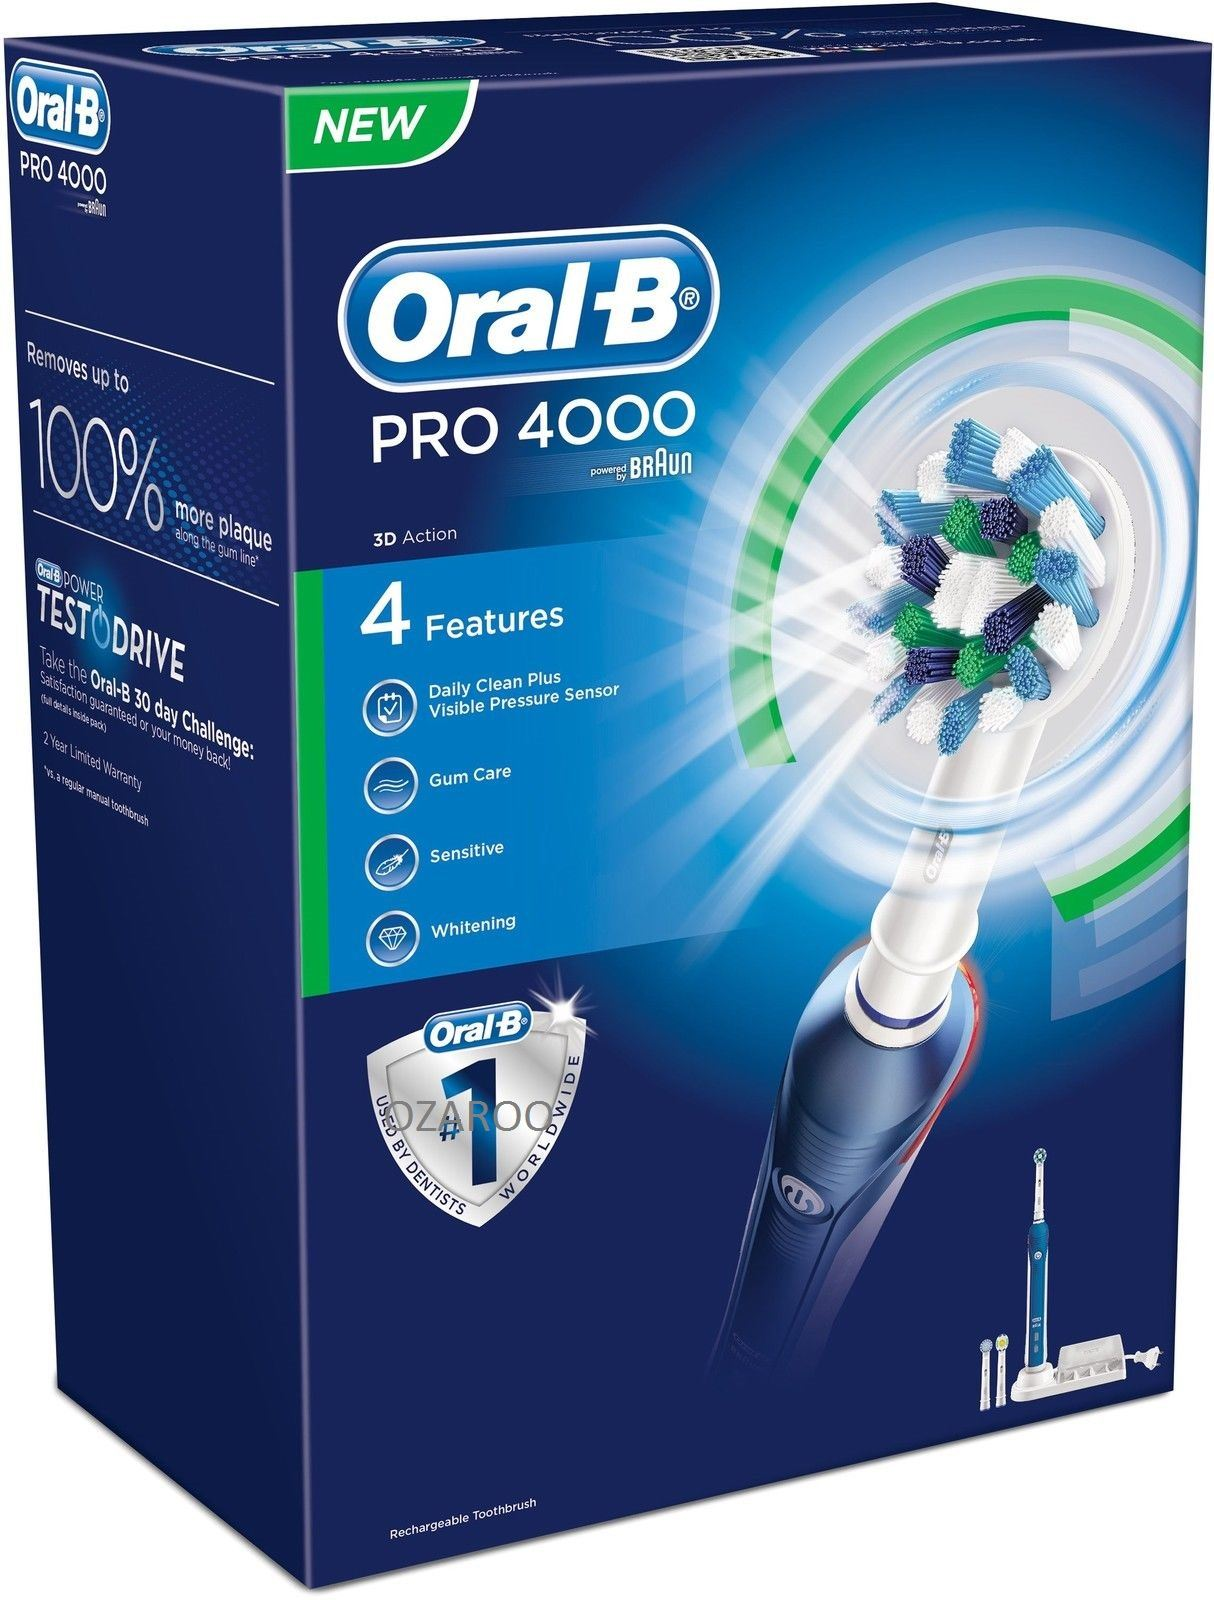 Braun Oral-B PRO 4000 CrossAction 3D 4-Mode Rechargeable Electric Toothbrush | eBay